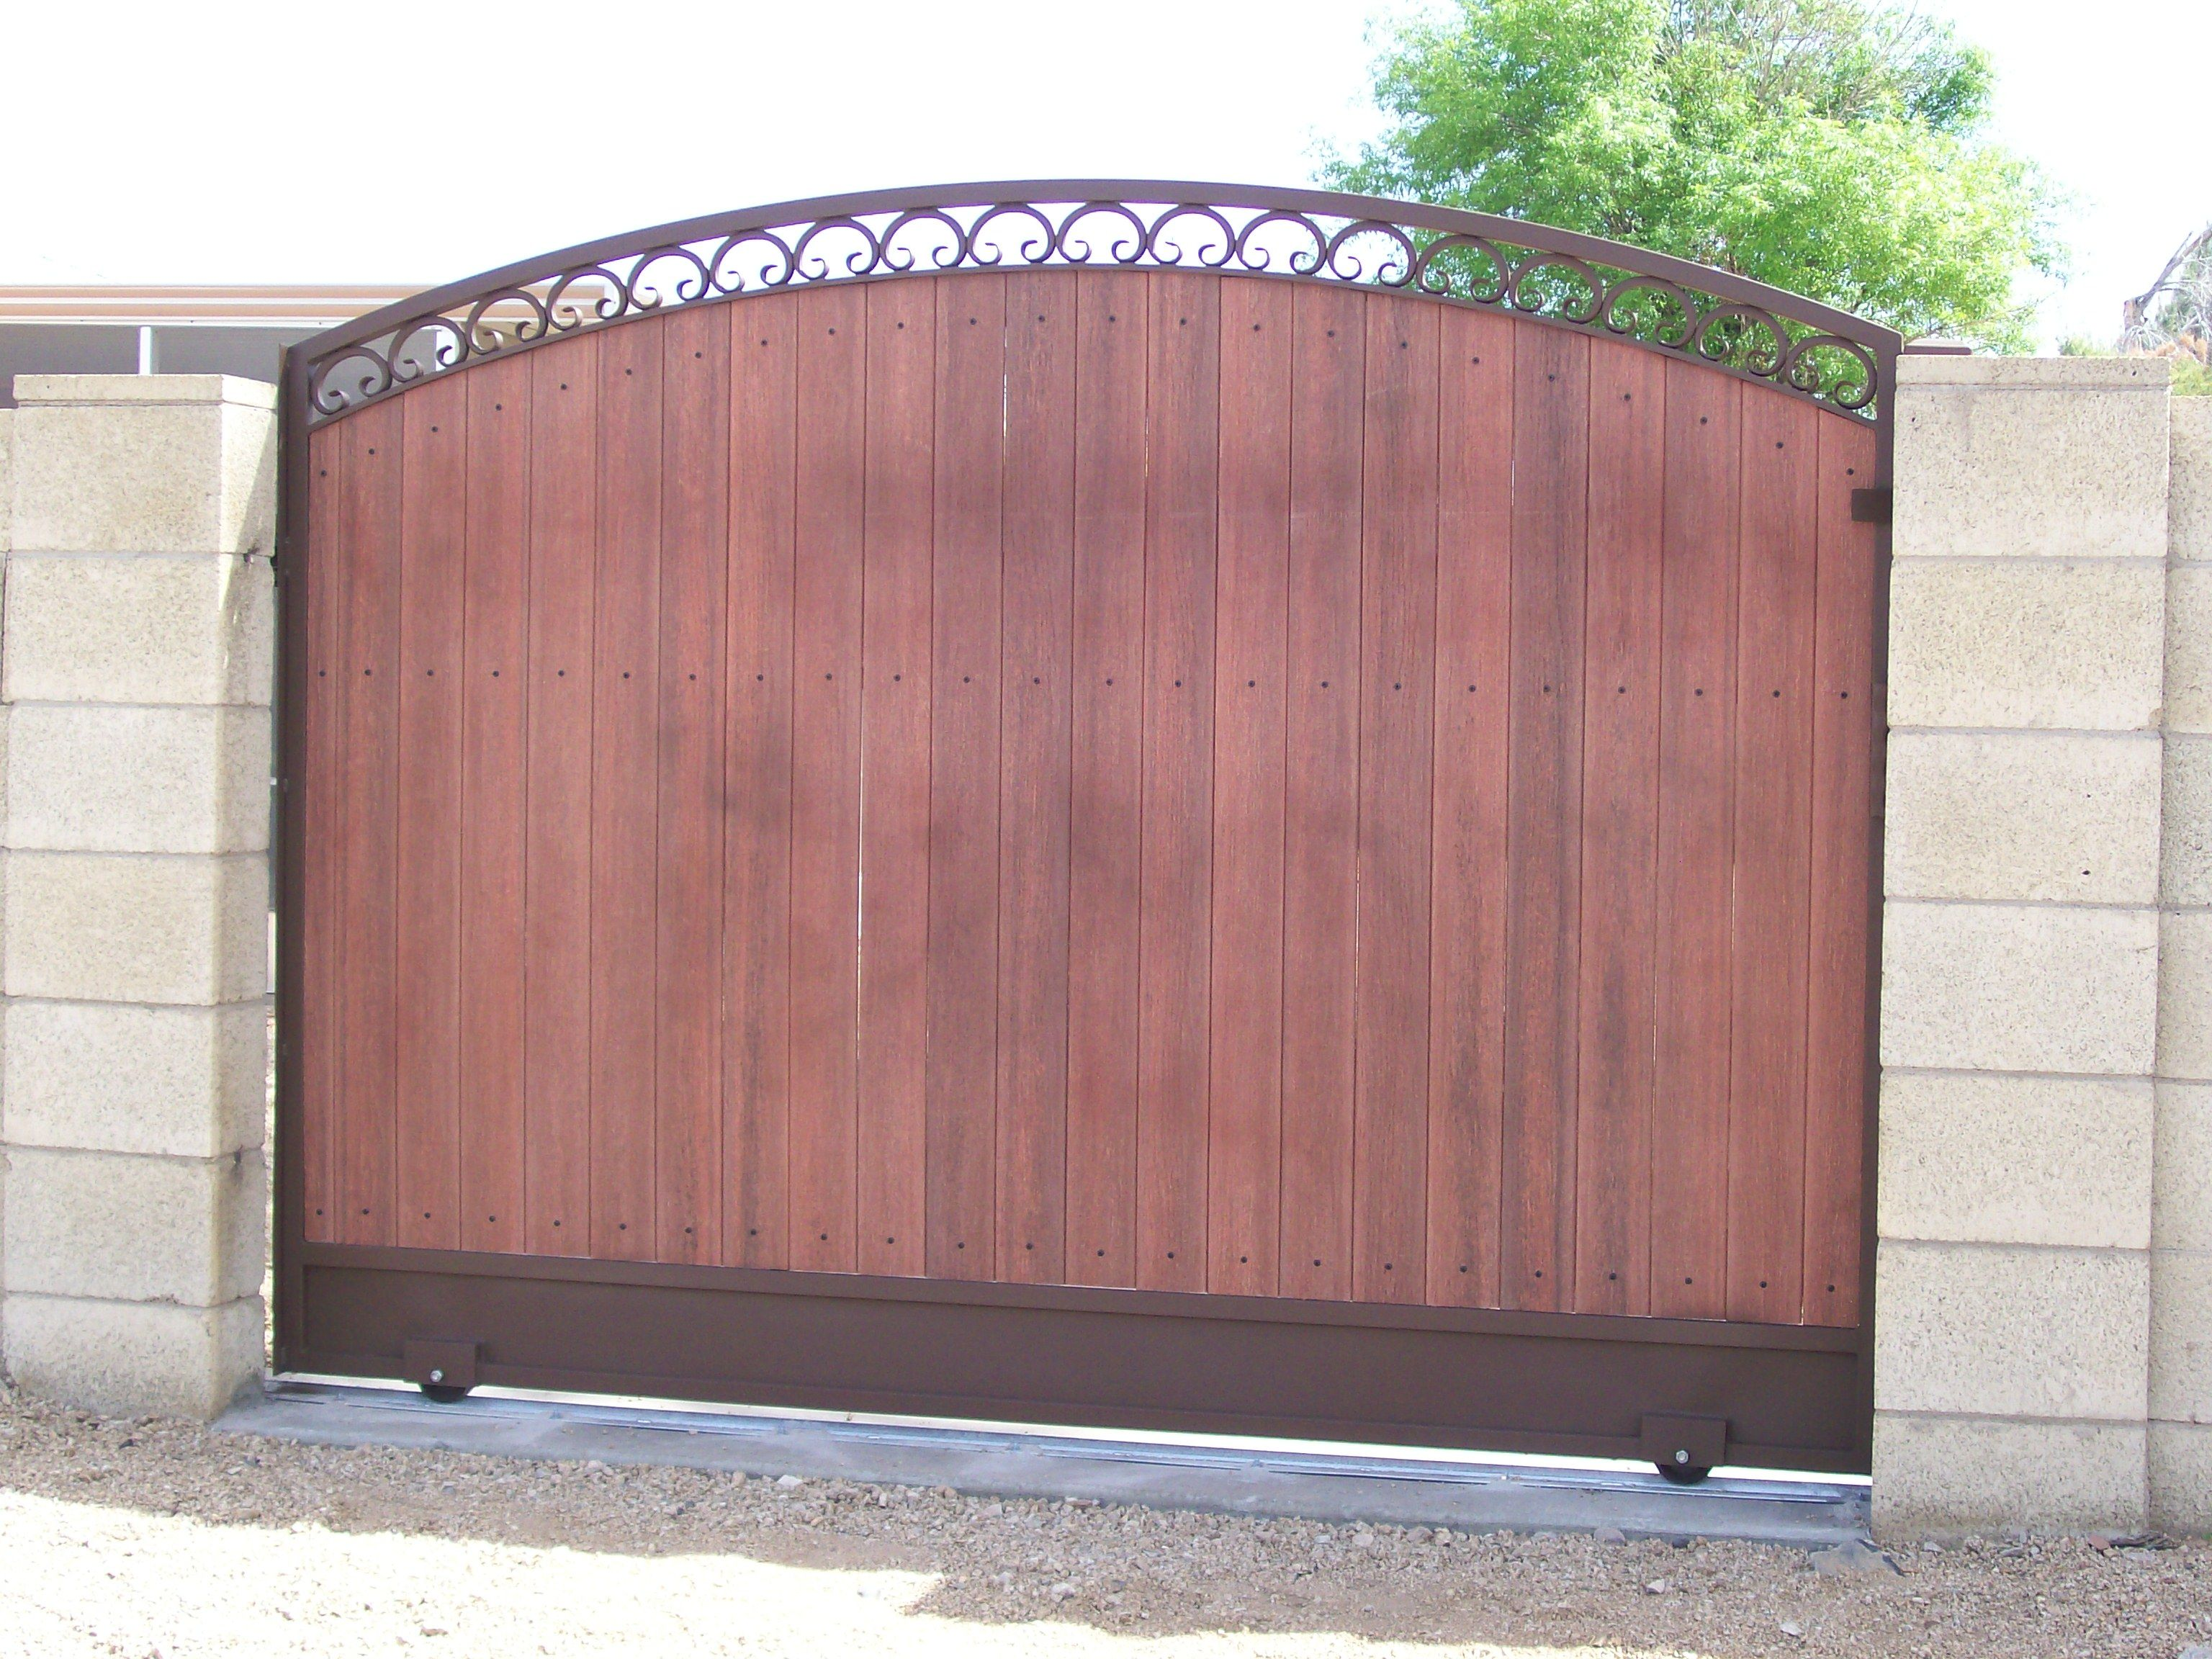 Gate Doors & Furniture Design The Intesrting Design Also